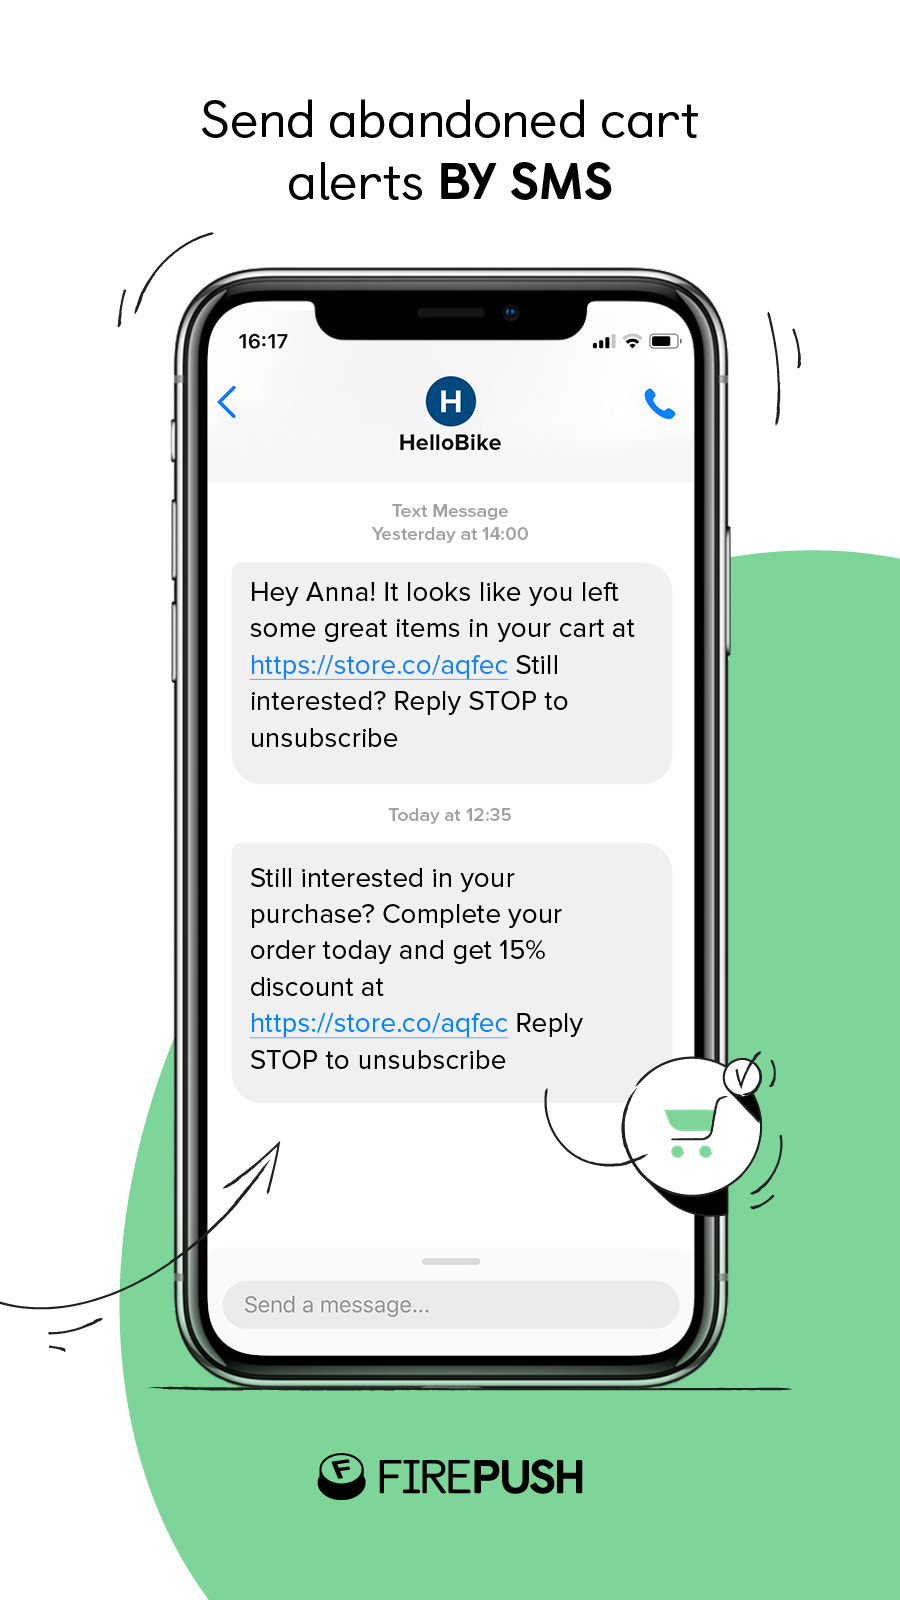 Abandoned cart recovery SMS for Shopify Plus stores by Firepush